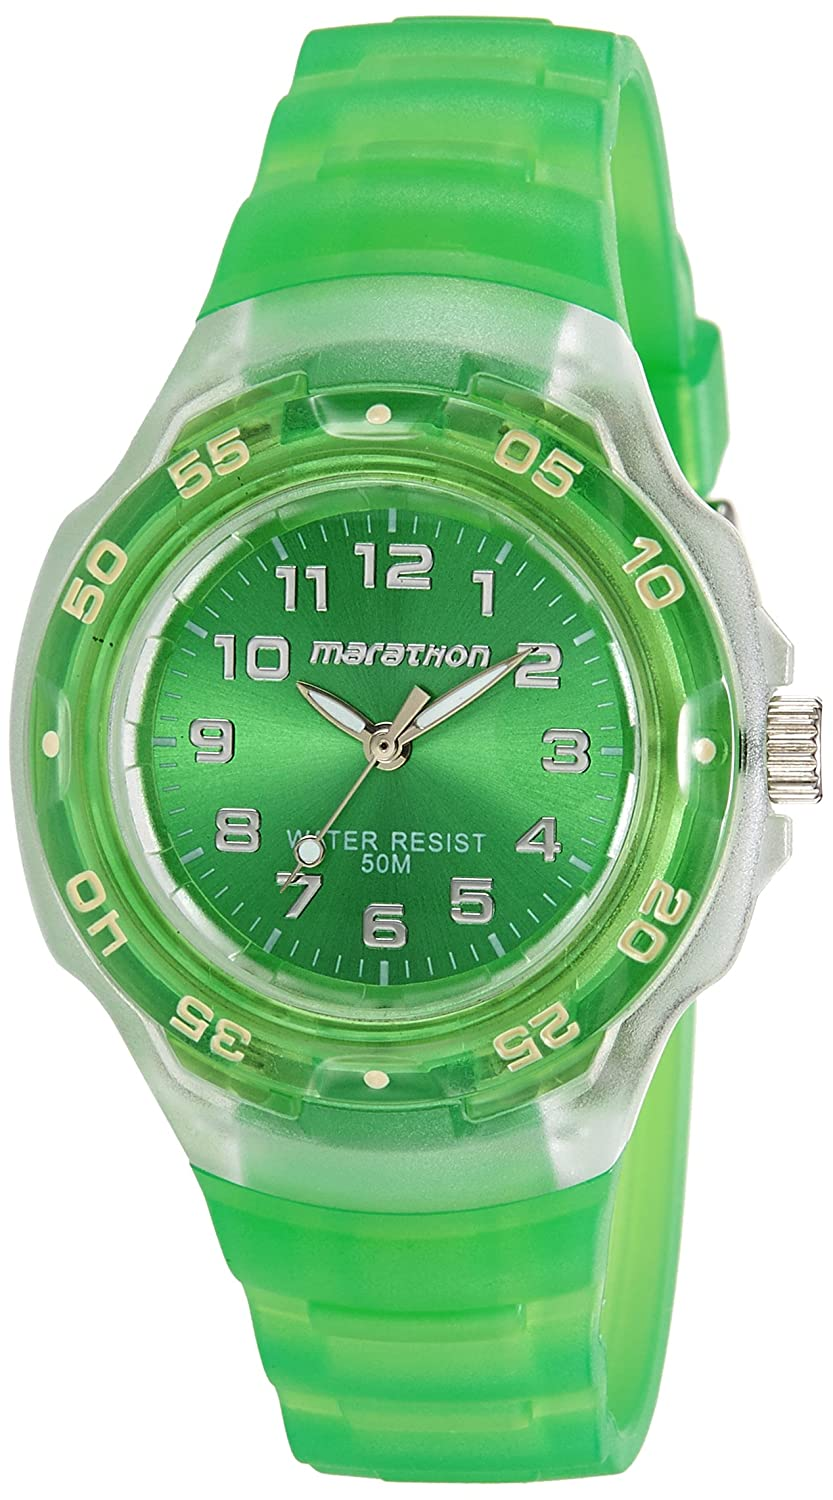 resin com amazon green lacoste s dp men watch silicone band watches with